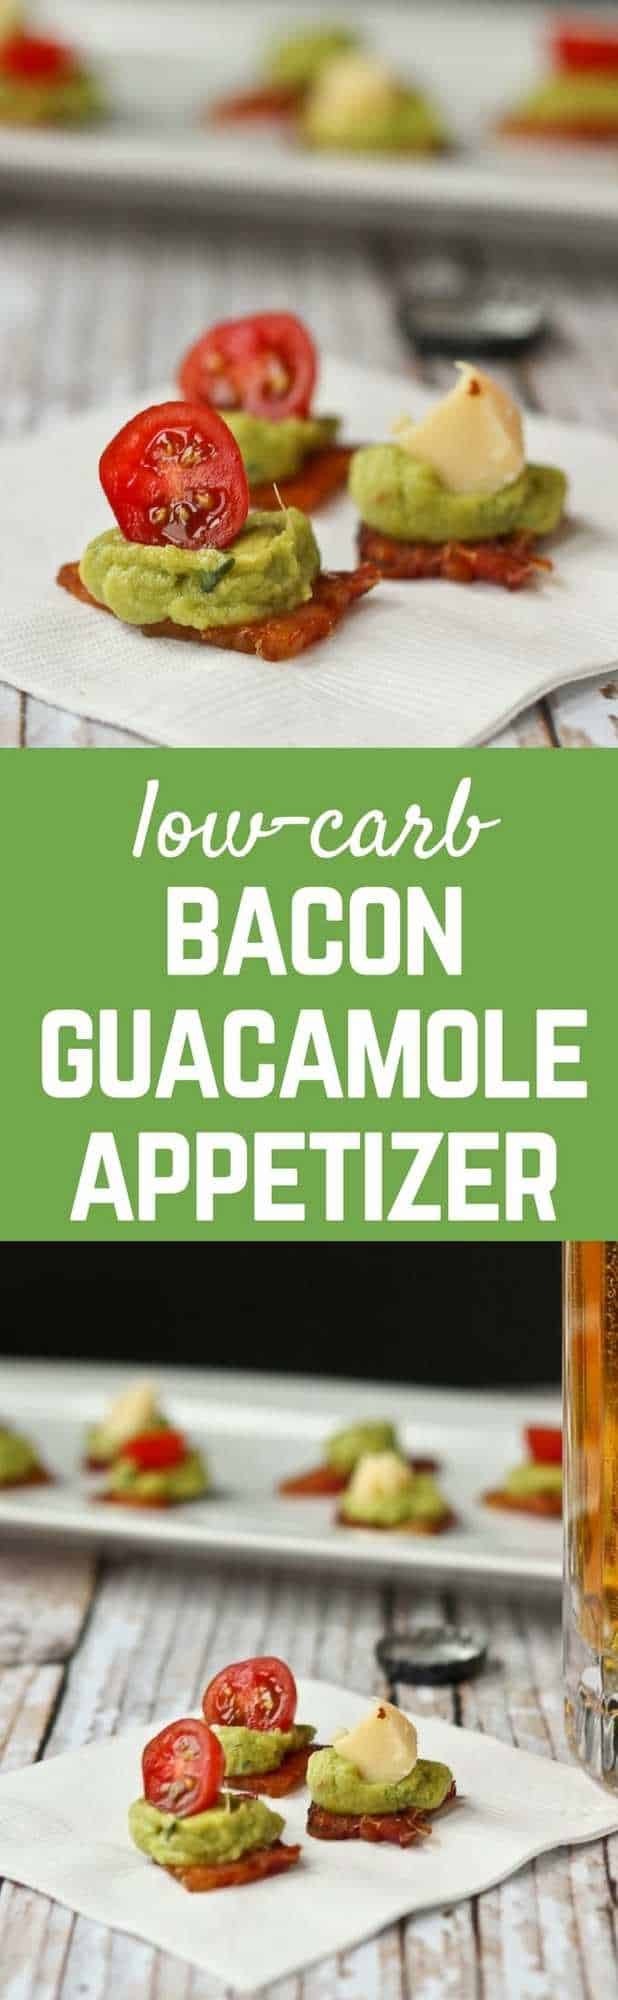 These bacon guacamole appetizer bites are perfect for game day - plus they're low-carb! Get the recipe on RachelCooks.com!